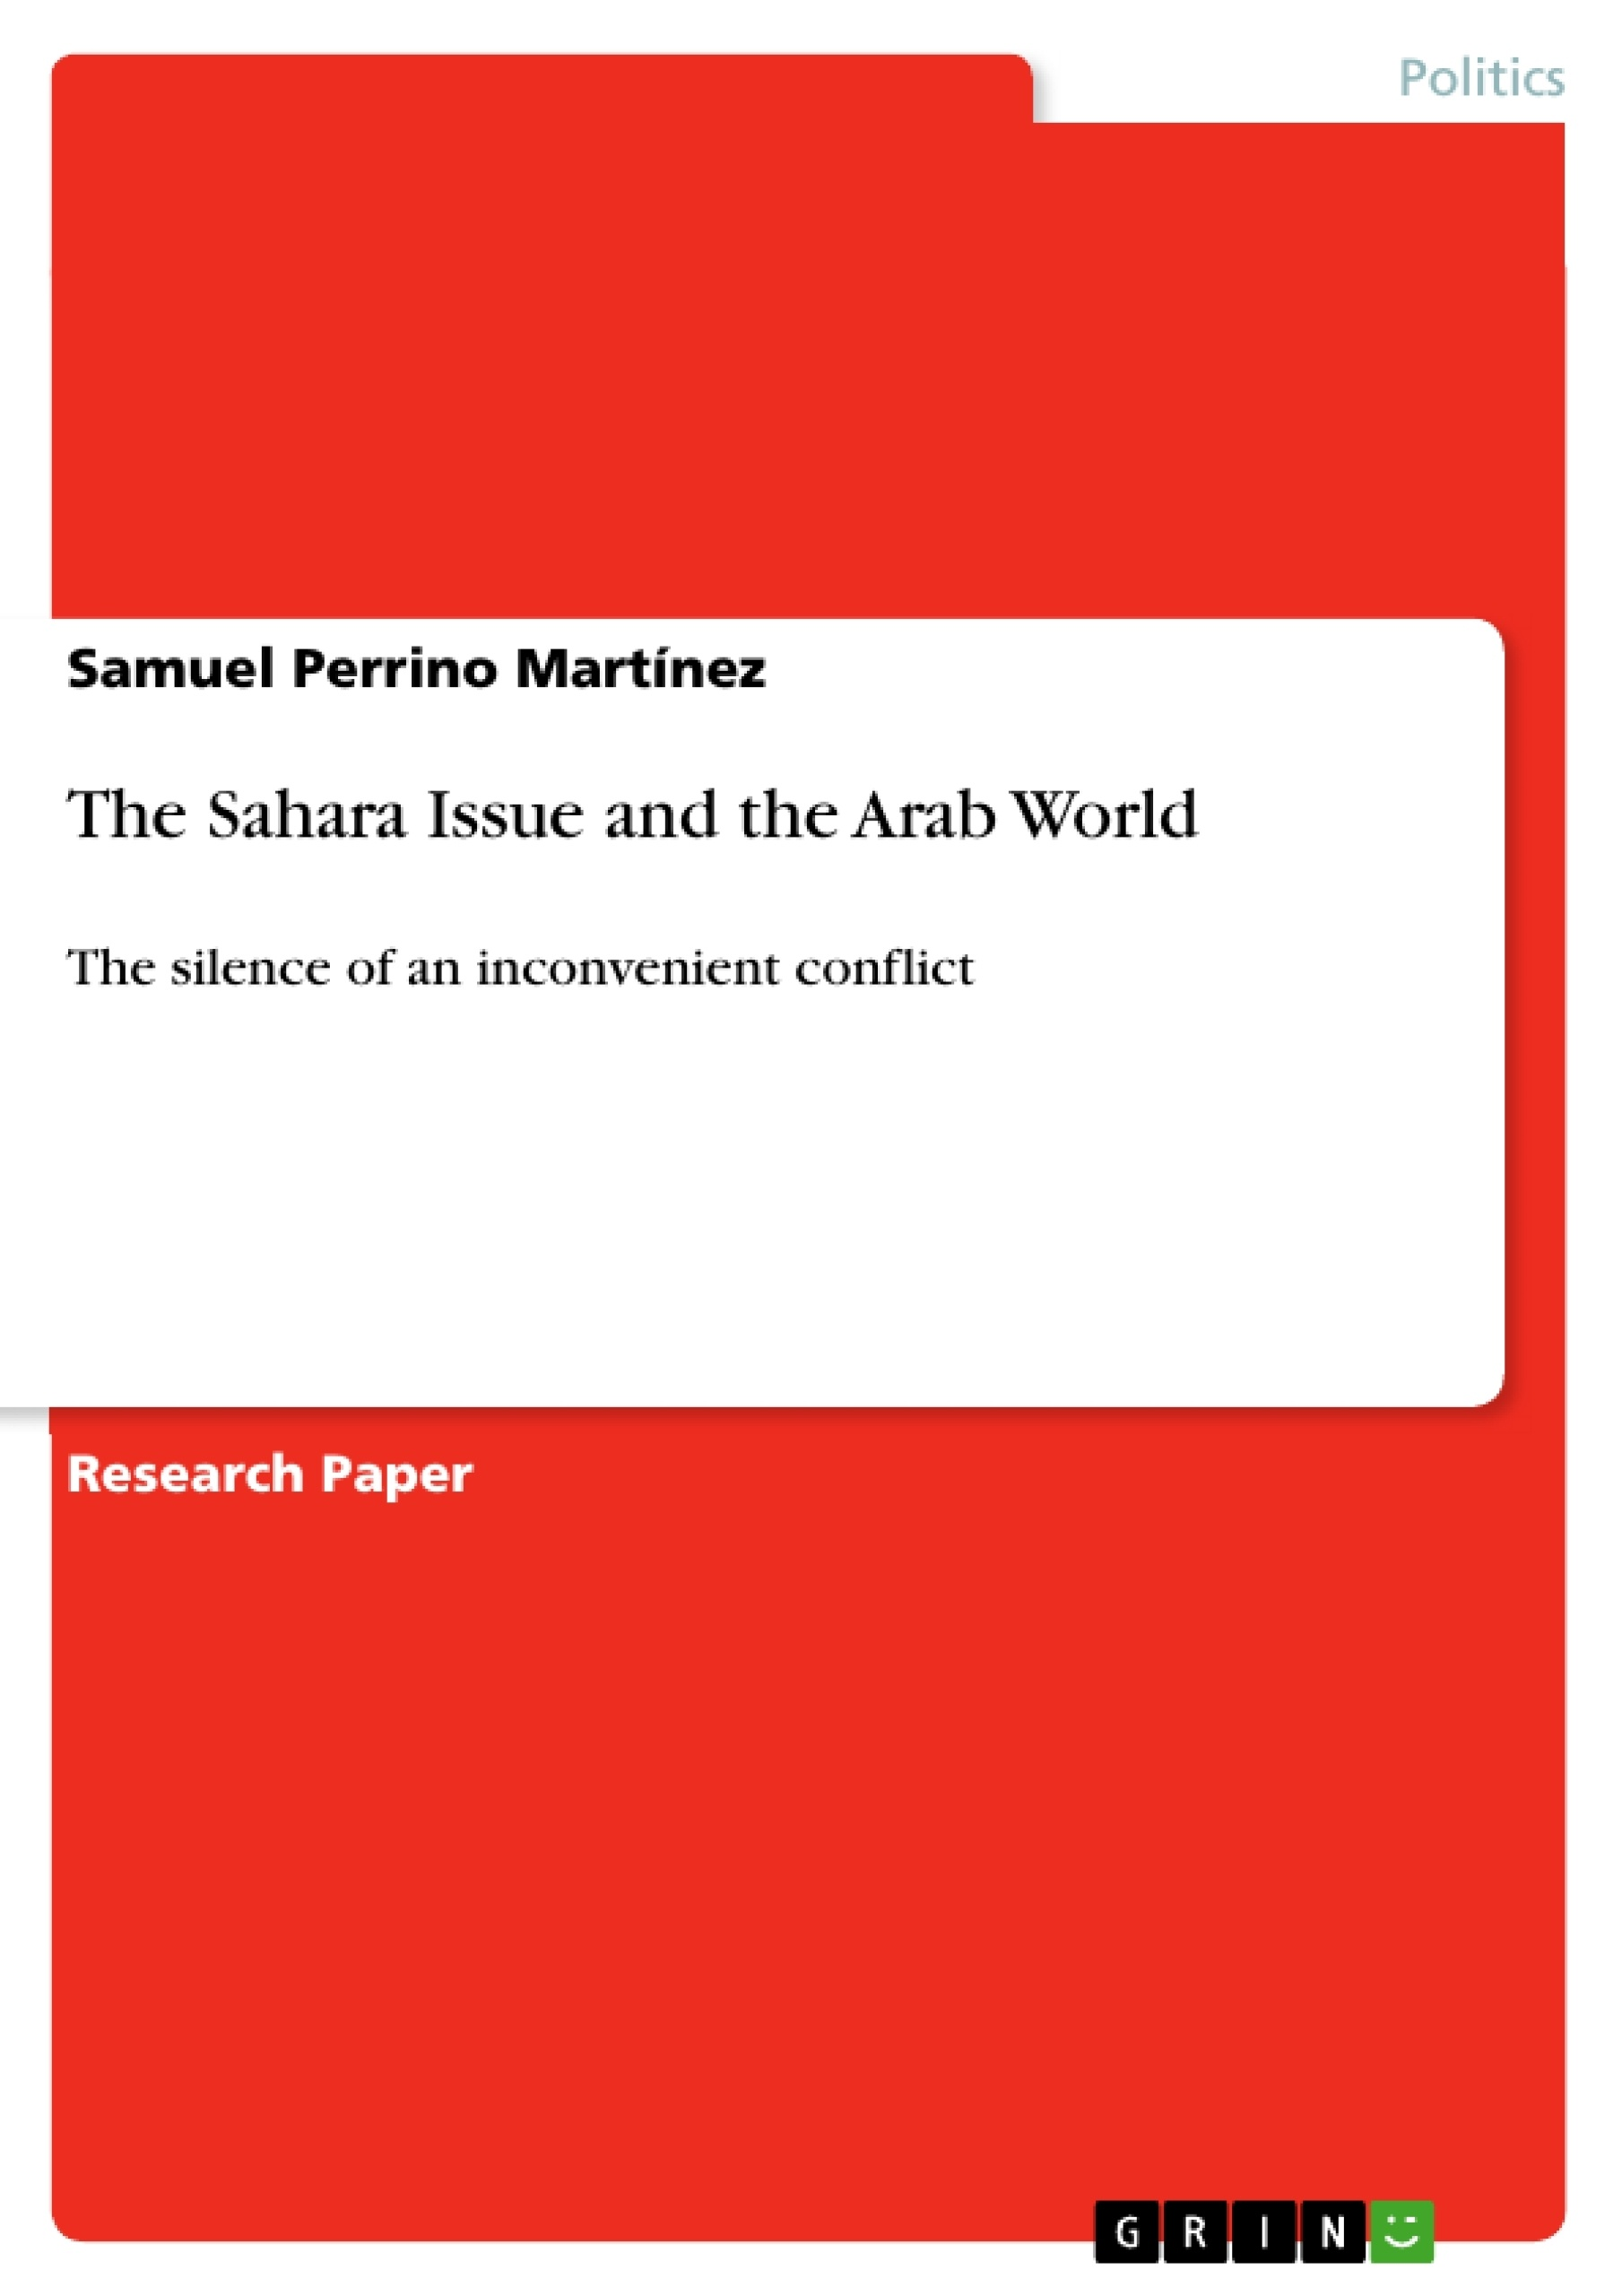 Title: The Sahara Issue and the Arab World